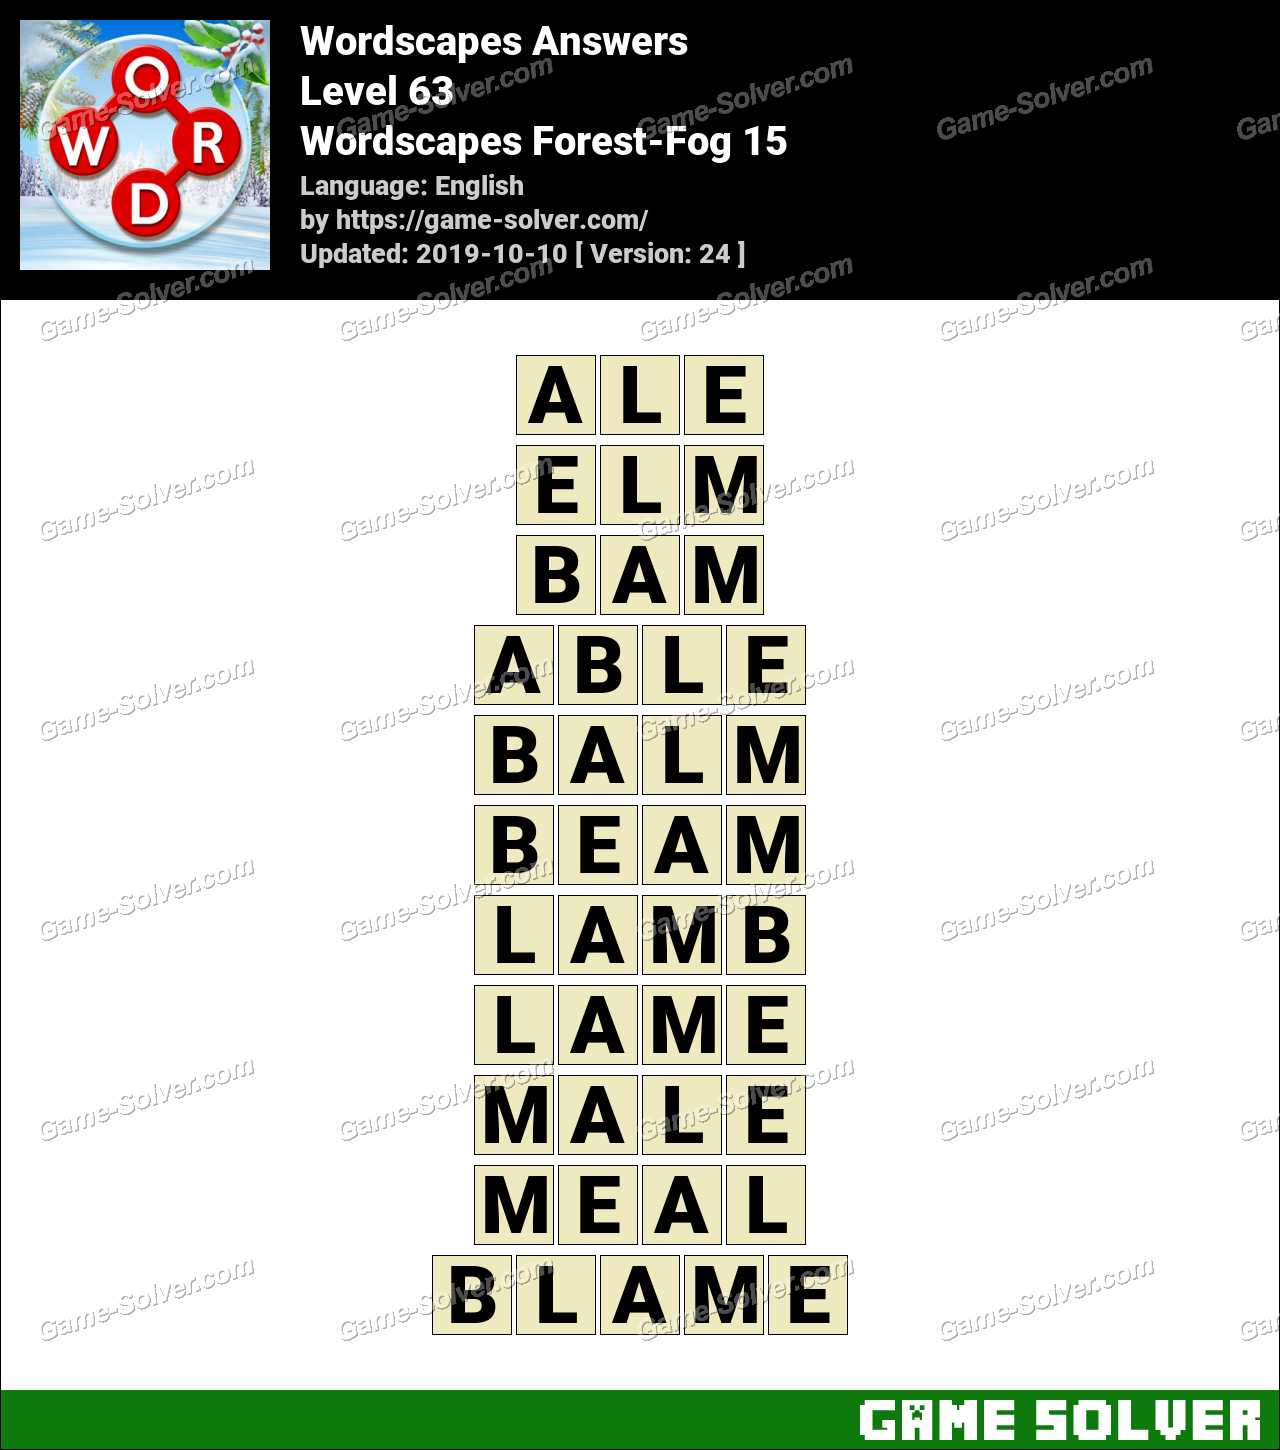 Wordscapes Forest-Fog 15 Answers